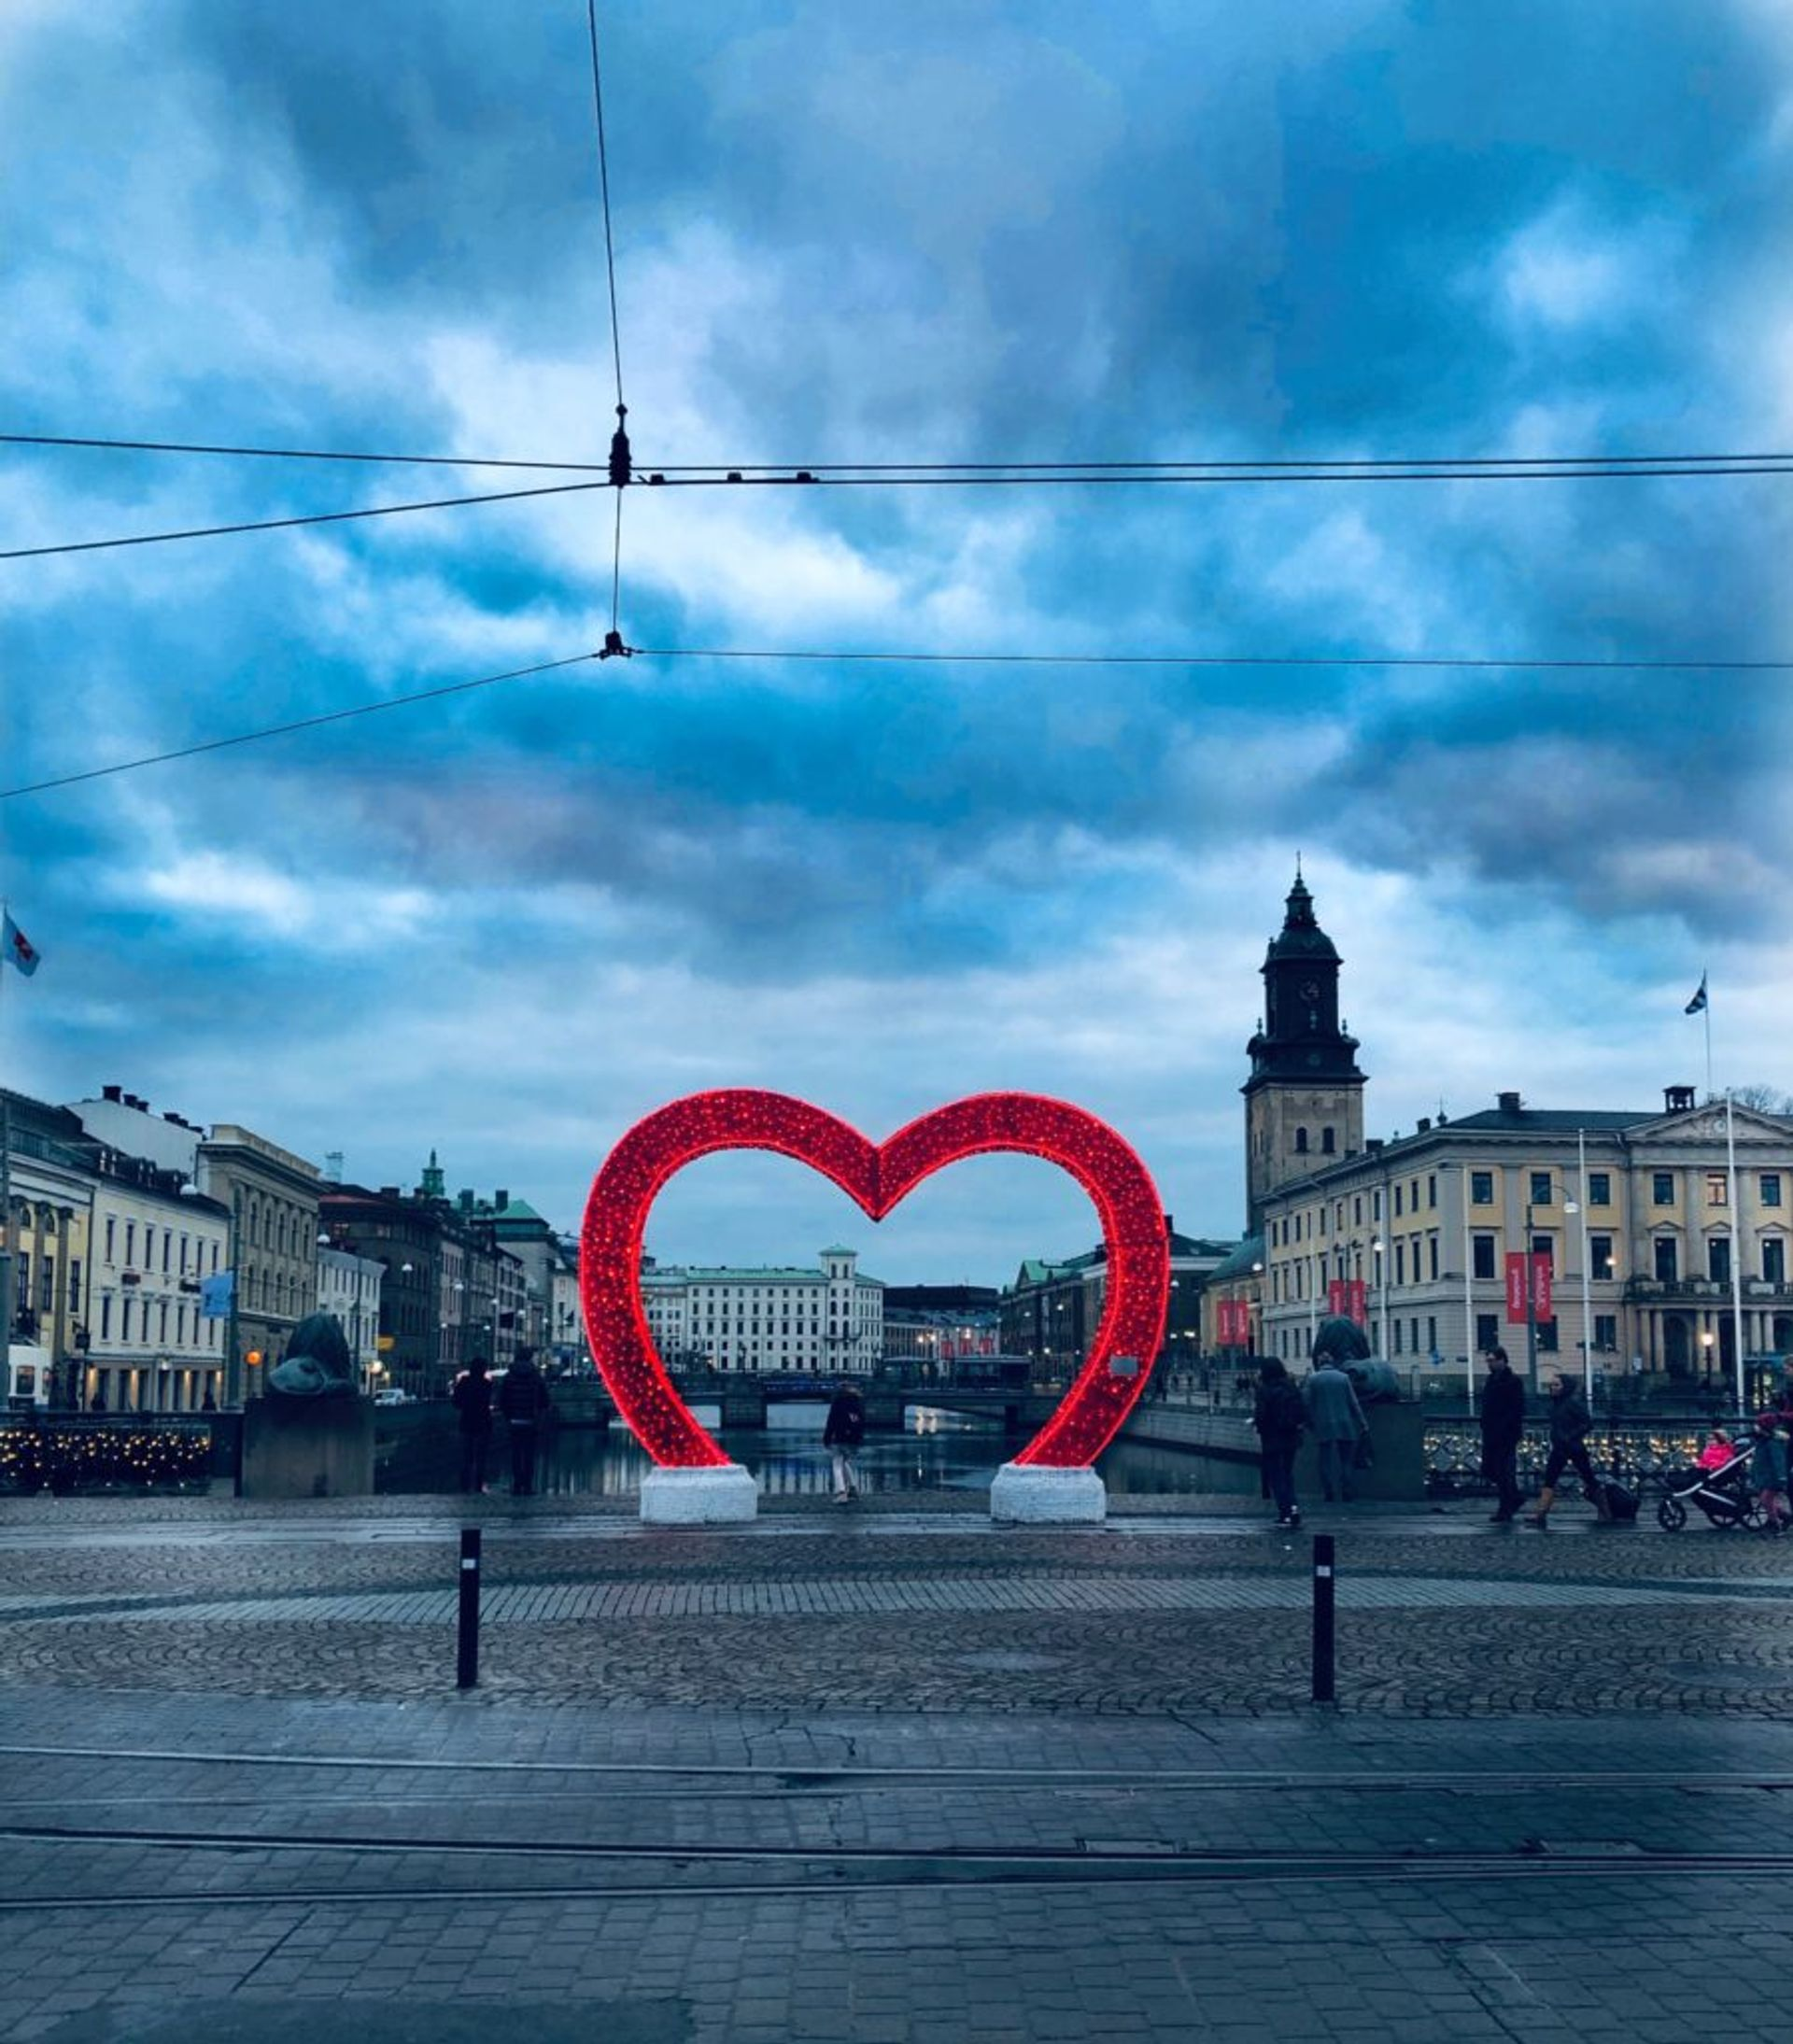 Christmas decoration in the form of a large heart on a bridge in Gothenburg.